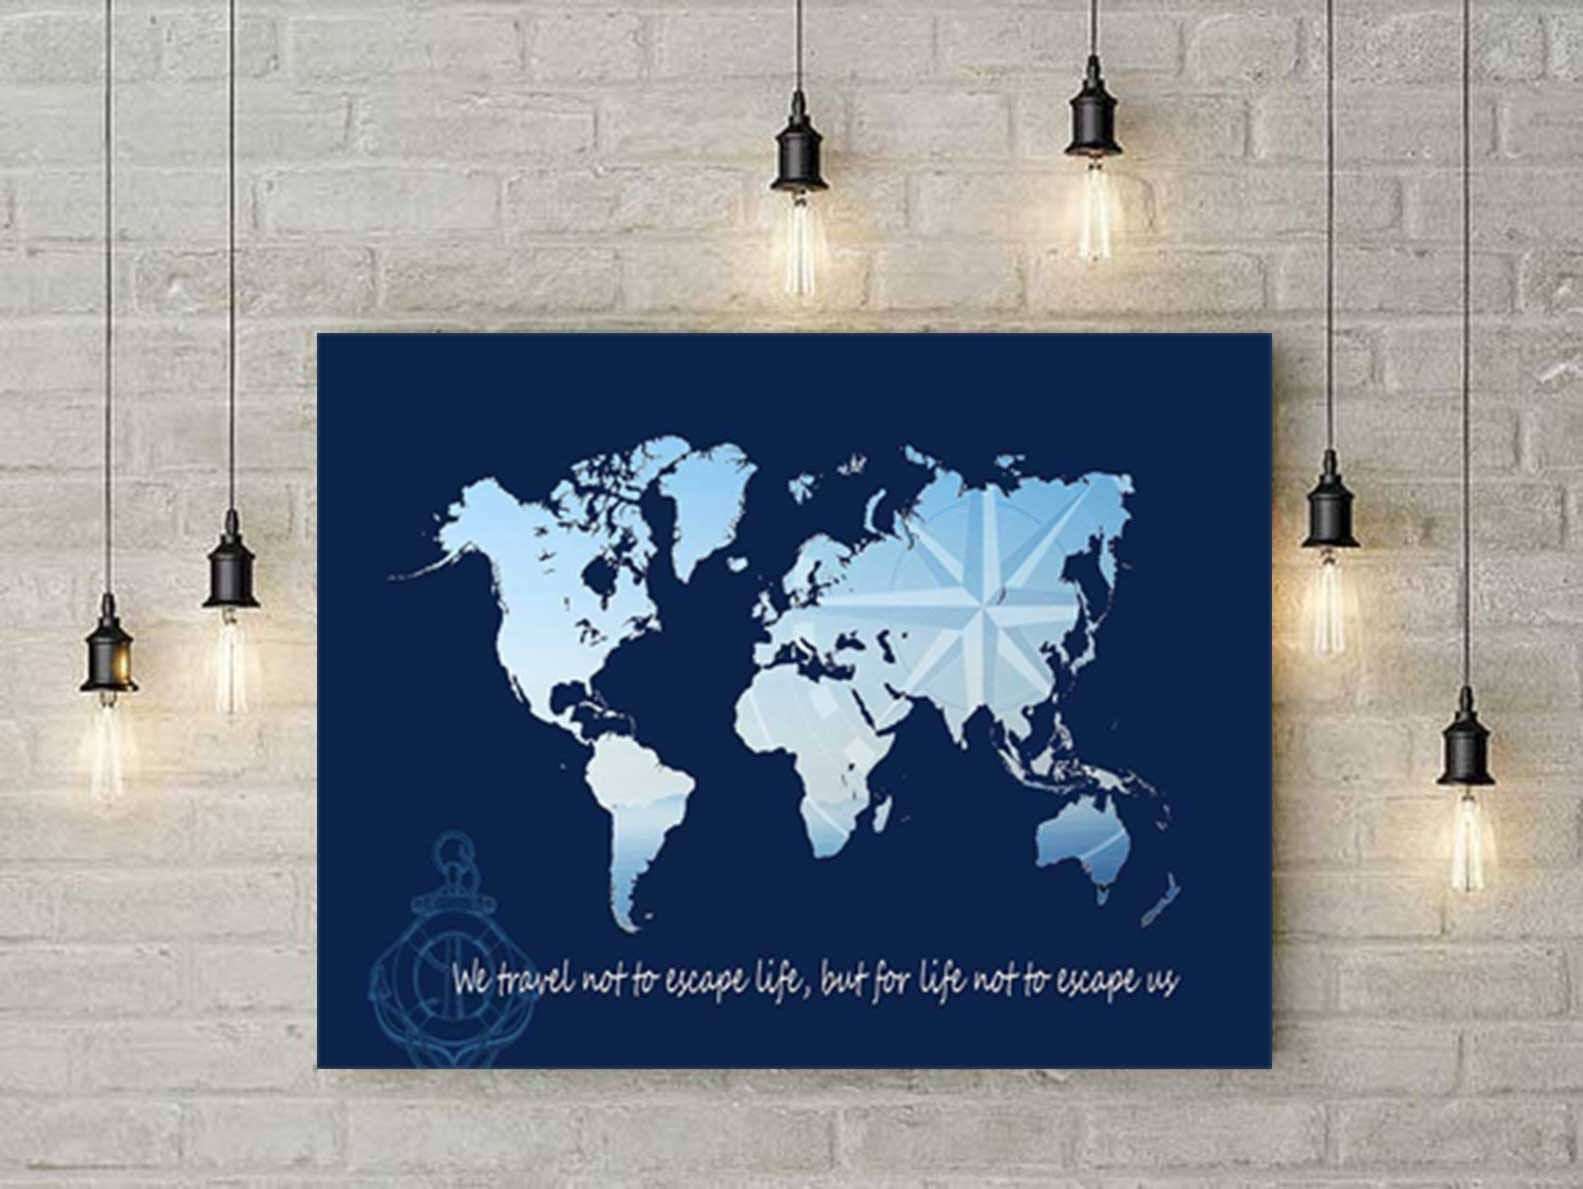 World map art map of the world world map poster inspiring world map art map of the world world map poster inspiring quotes gumiabroncs Gallery